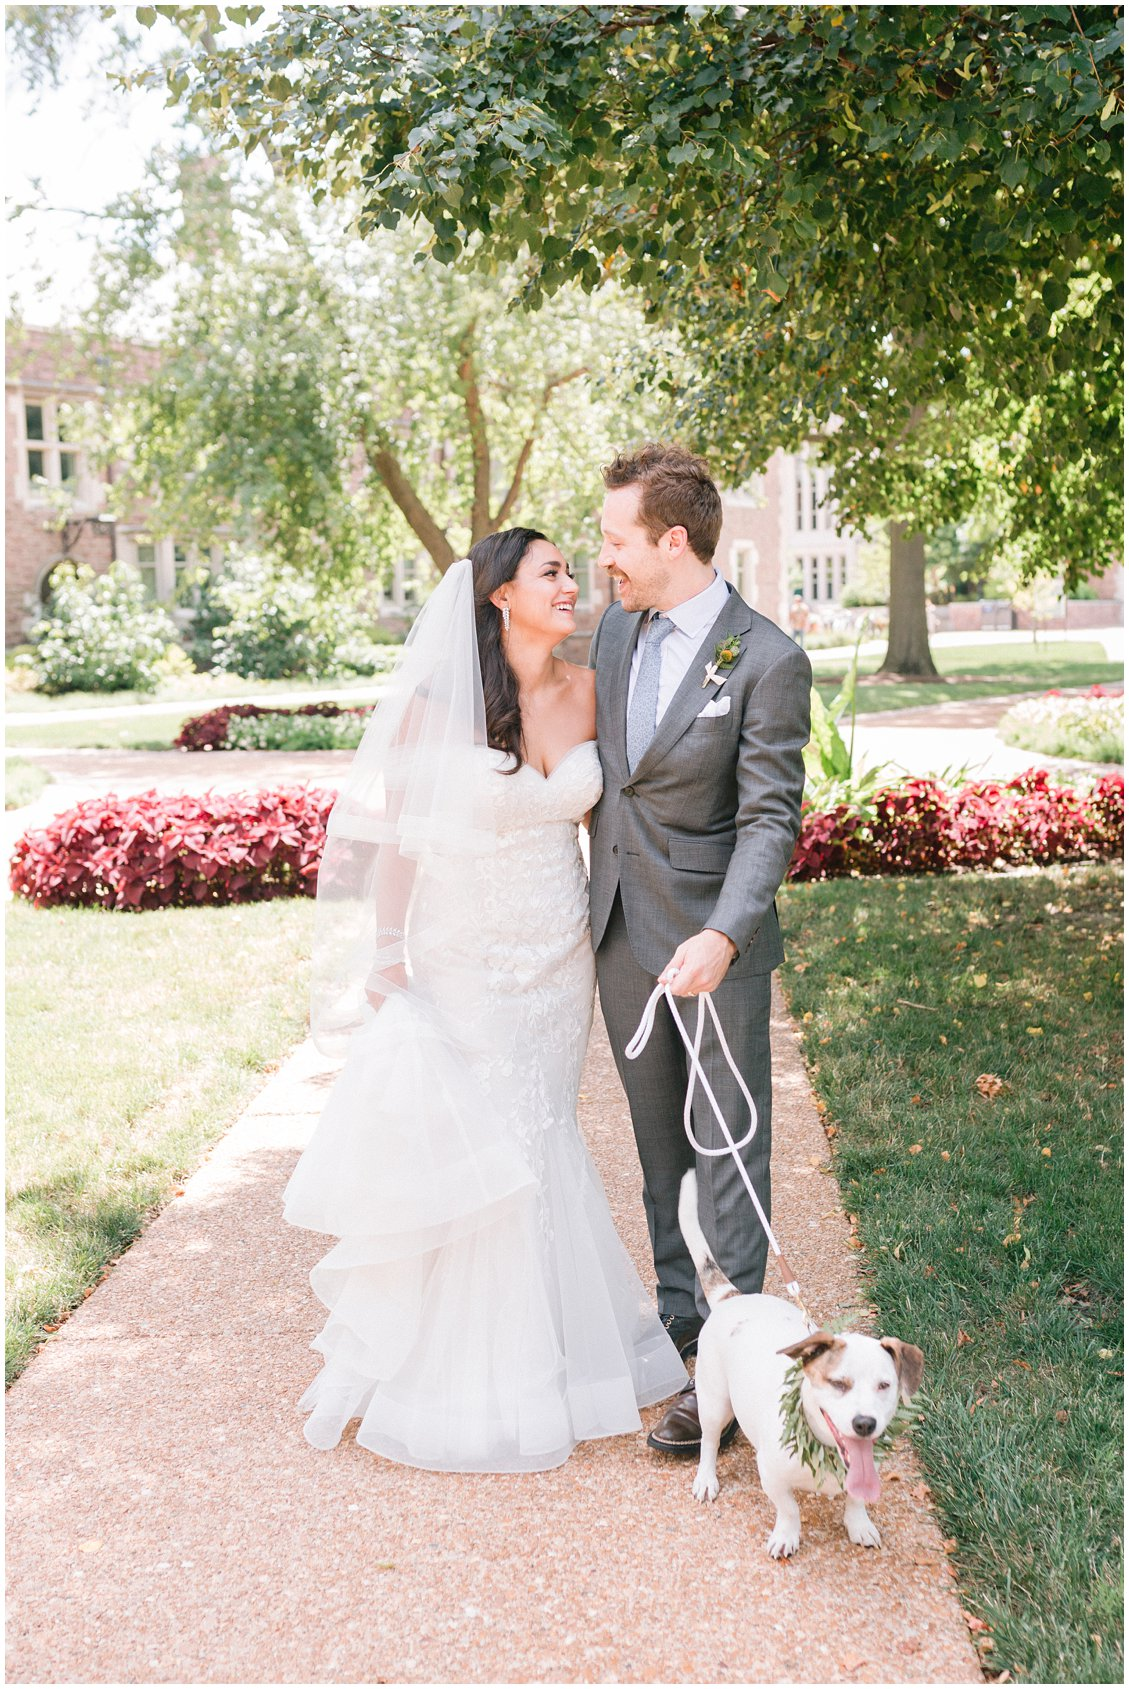 Dog floral collar at an elegant summertime wedding at The Boocat Club and Graham Chapel on WashU Campus in St Louis Missouri by Pattengale Photography